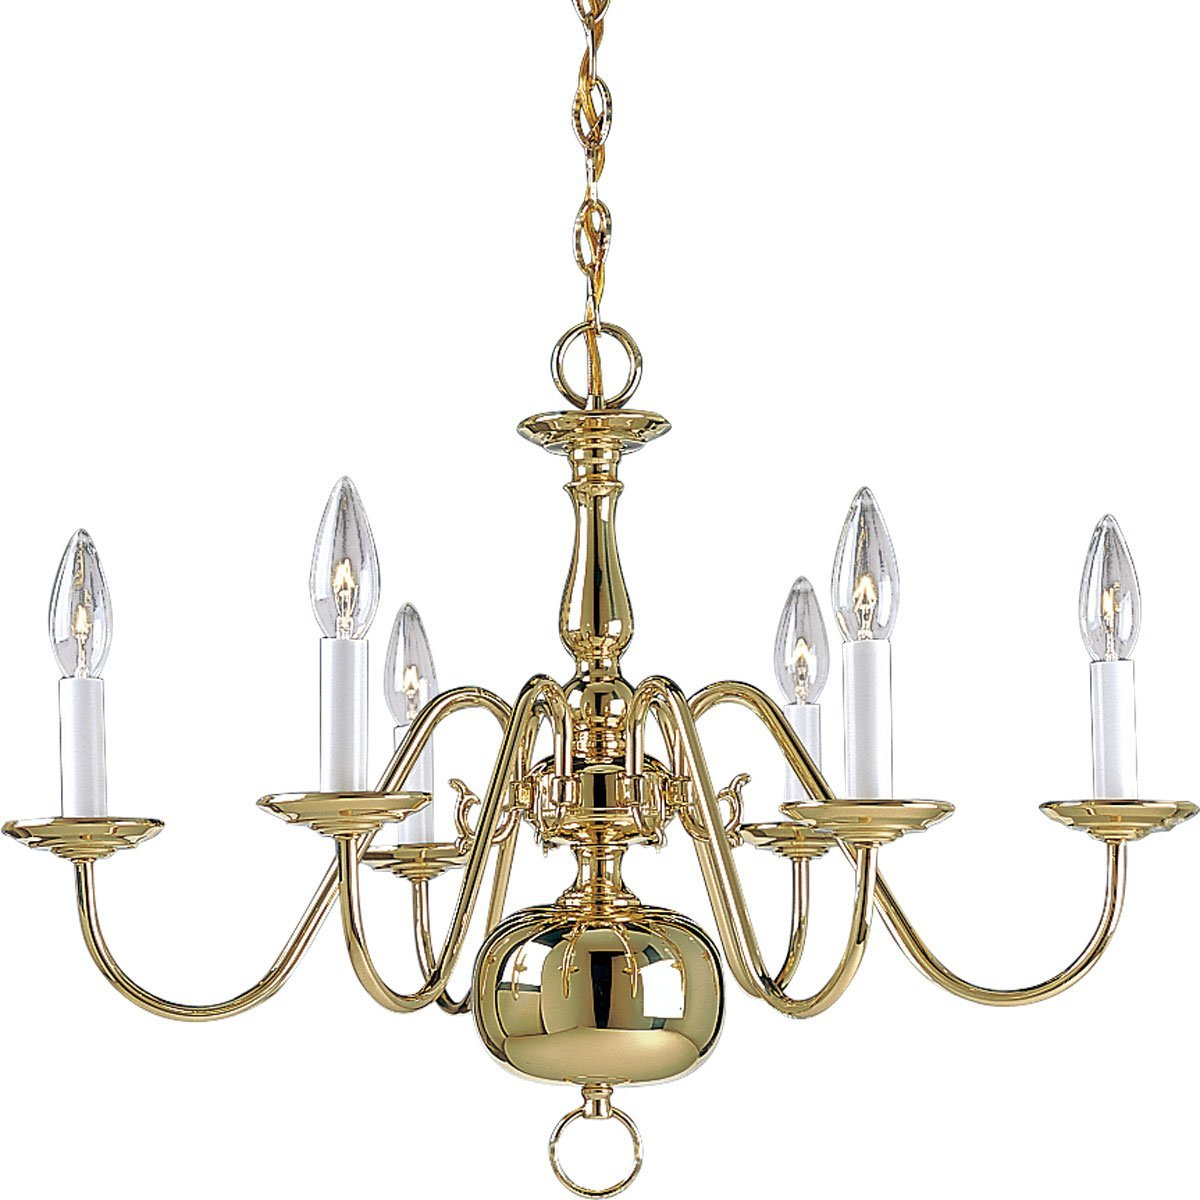 Lighting wonderful livex lighting for home lighting ideas wonderful livex lighting 3 tier chandelier for home lighting ideas aloadofball Choice Image